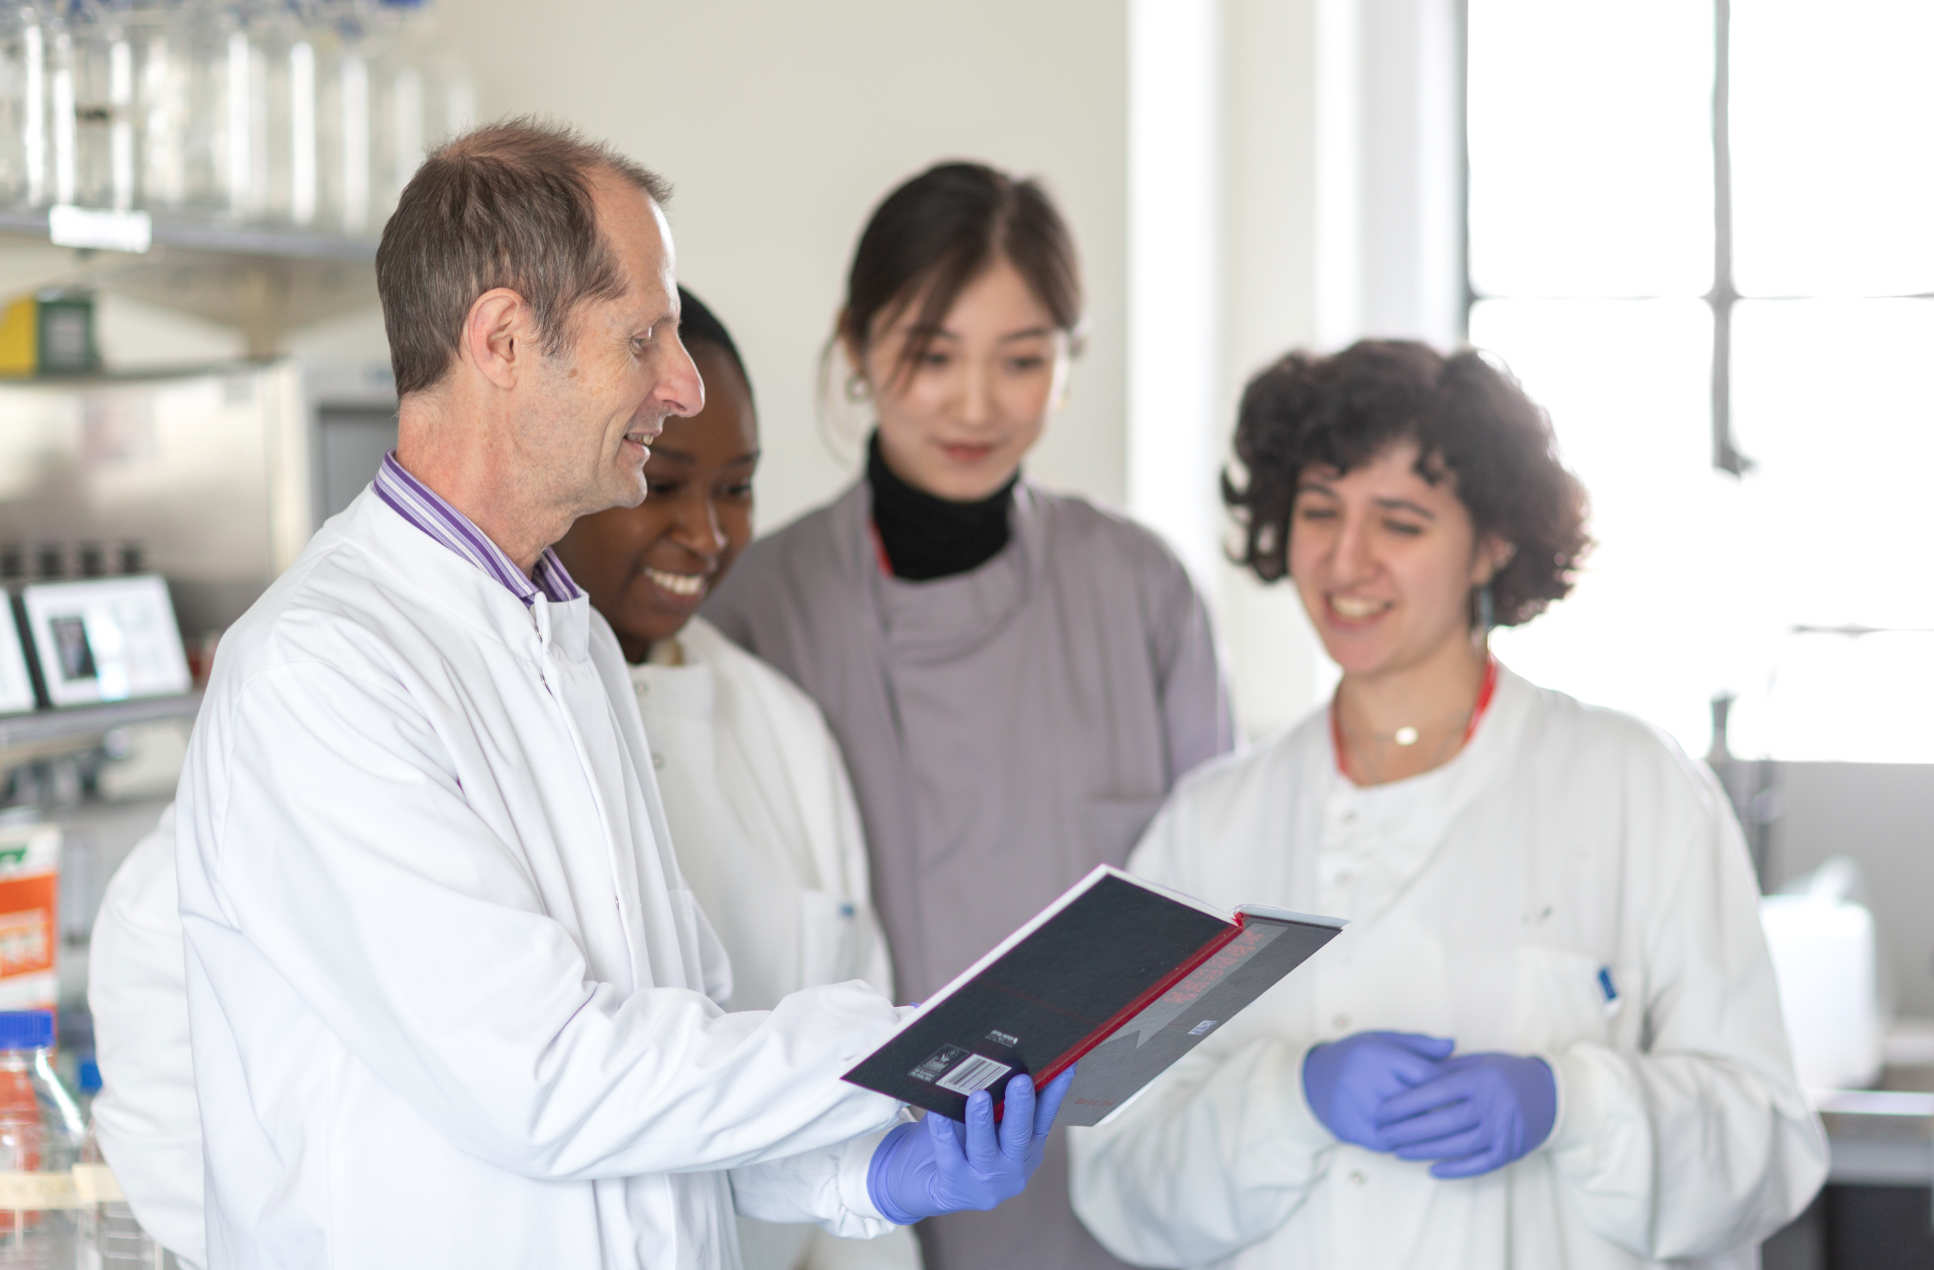 Professor Robin Shattock and team, working in the lab to develop a coronavirus vaccine.